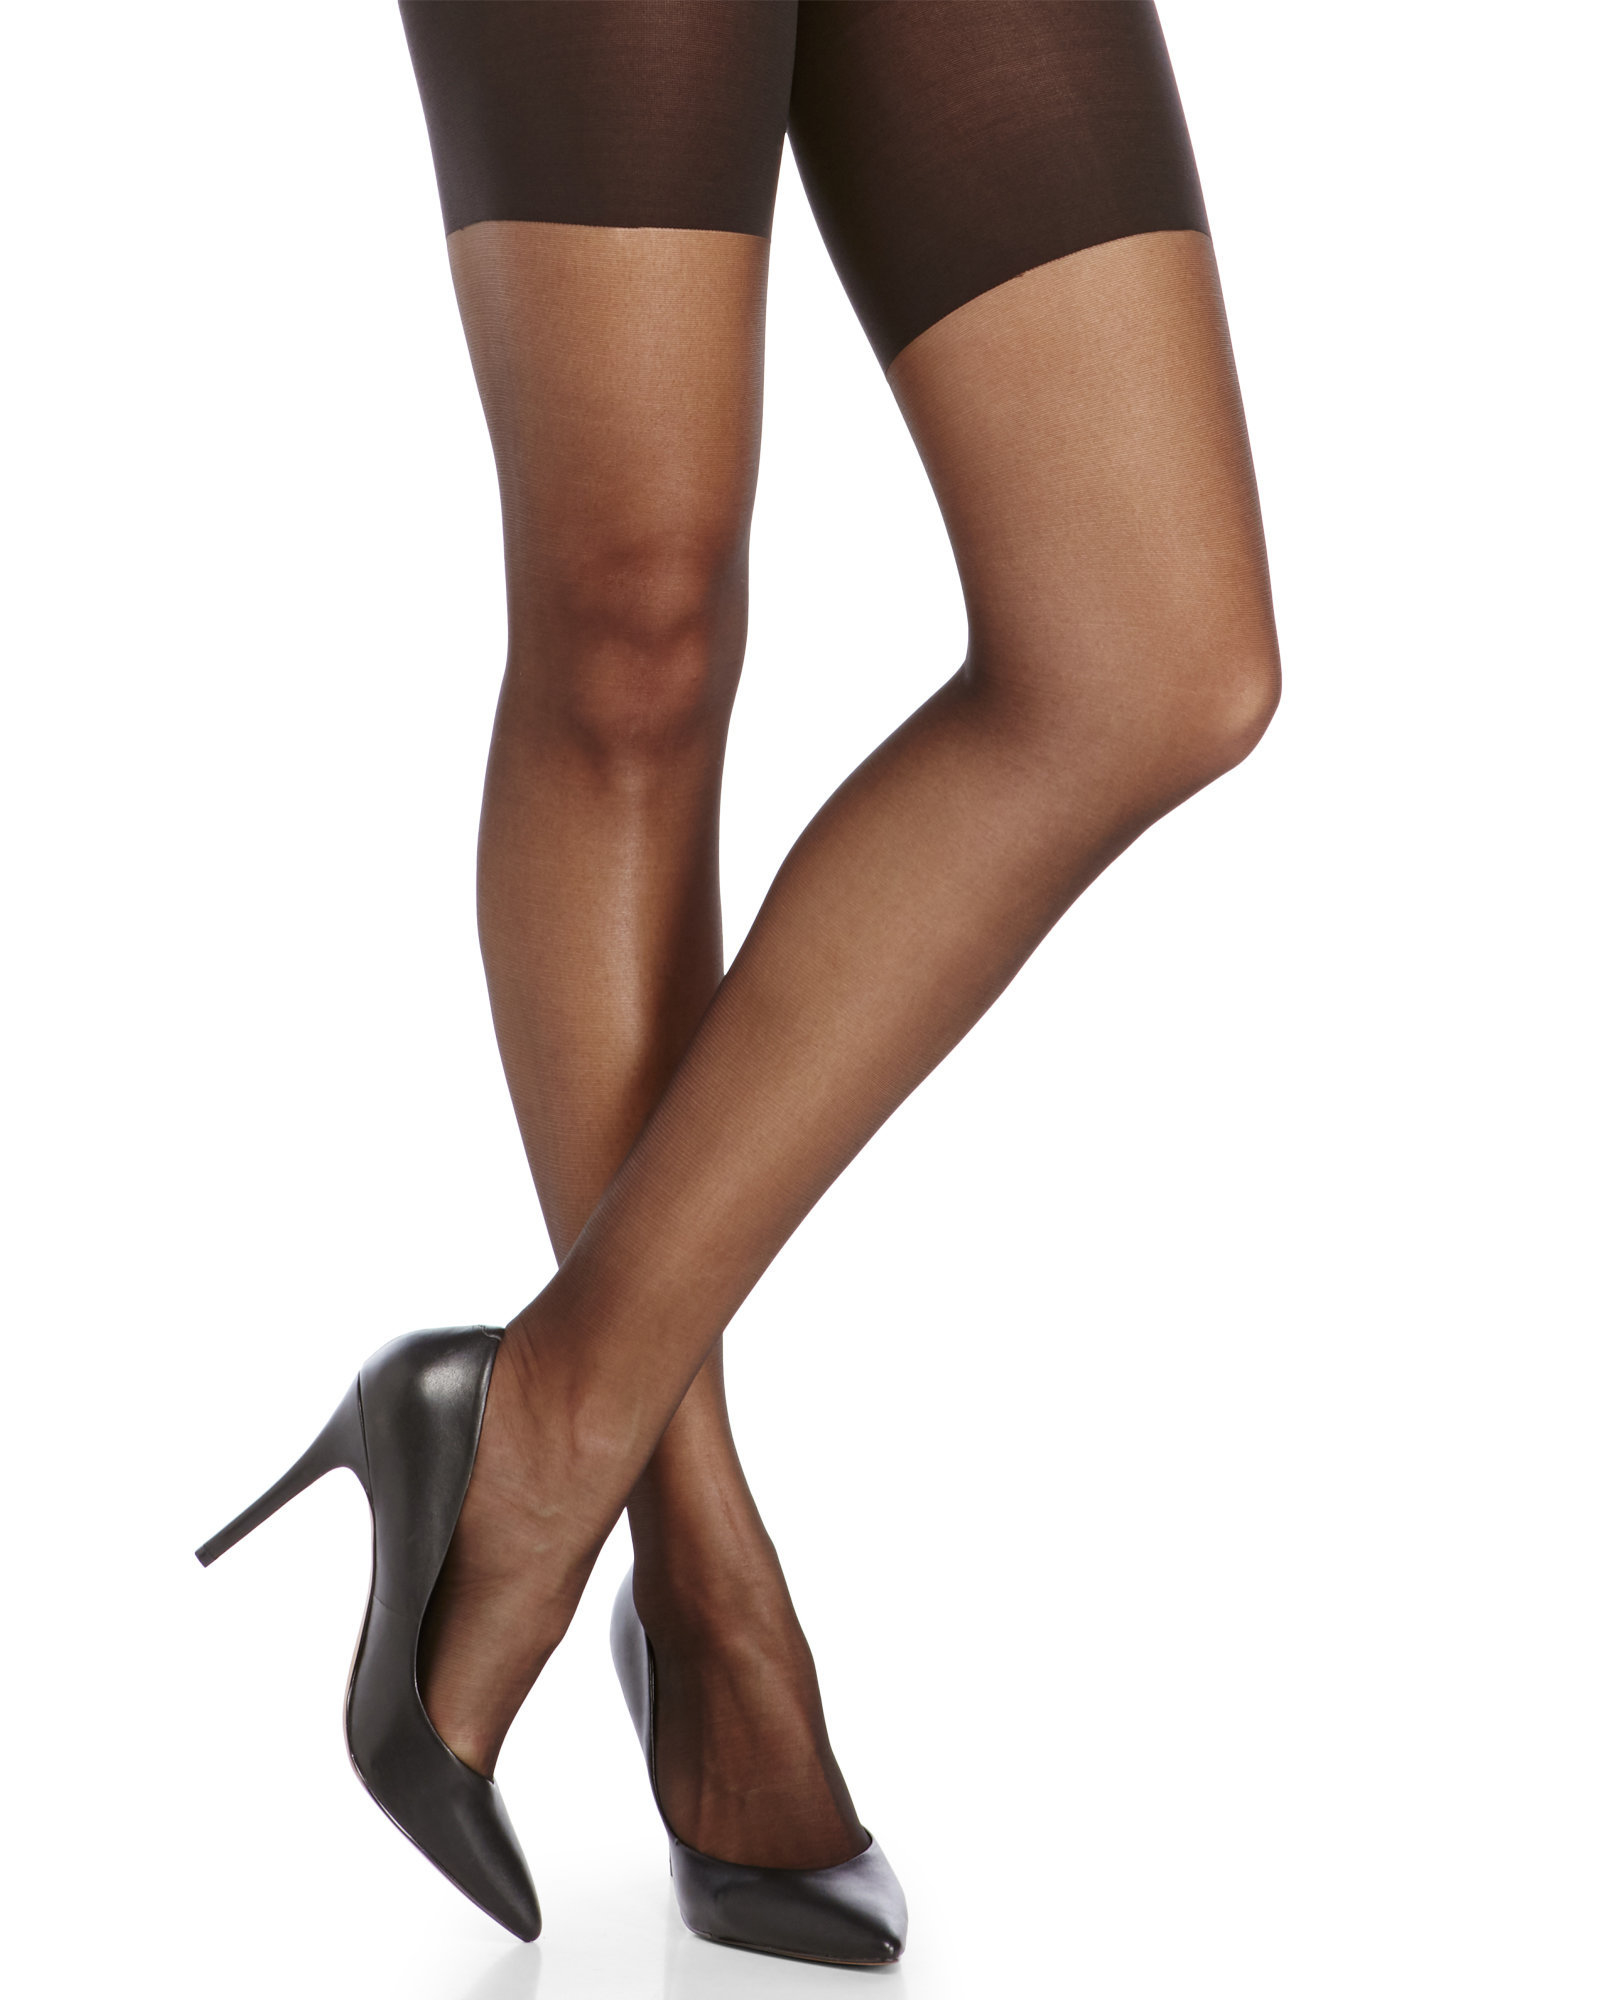 0f73ac7aa49 Lyst - Spanx High-Waist Sheer Tights in Black